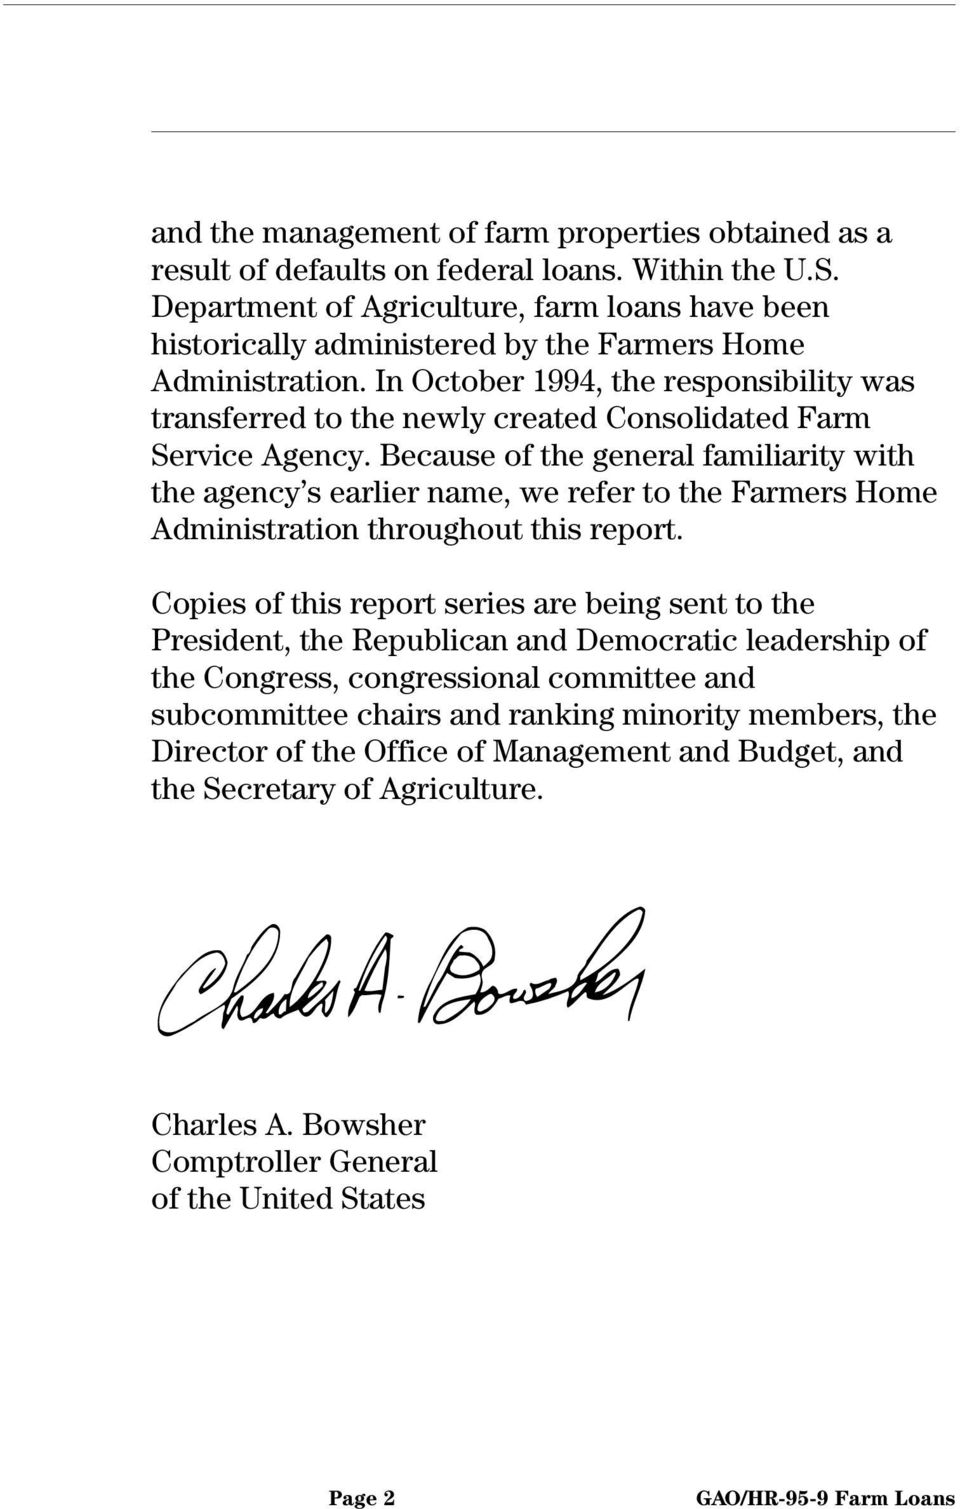 In October 1994, the responsibility was transferred to the newly created Consolidated Farm Service Agency.